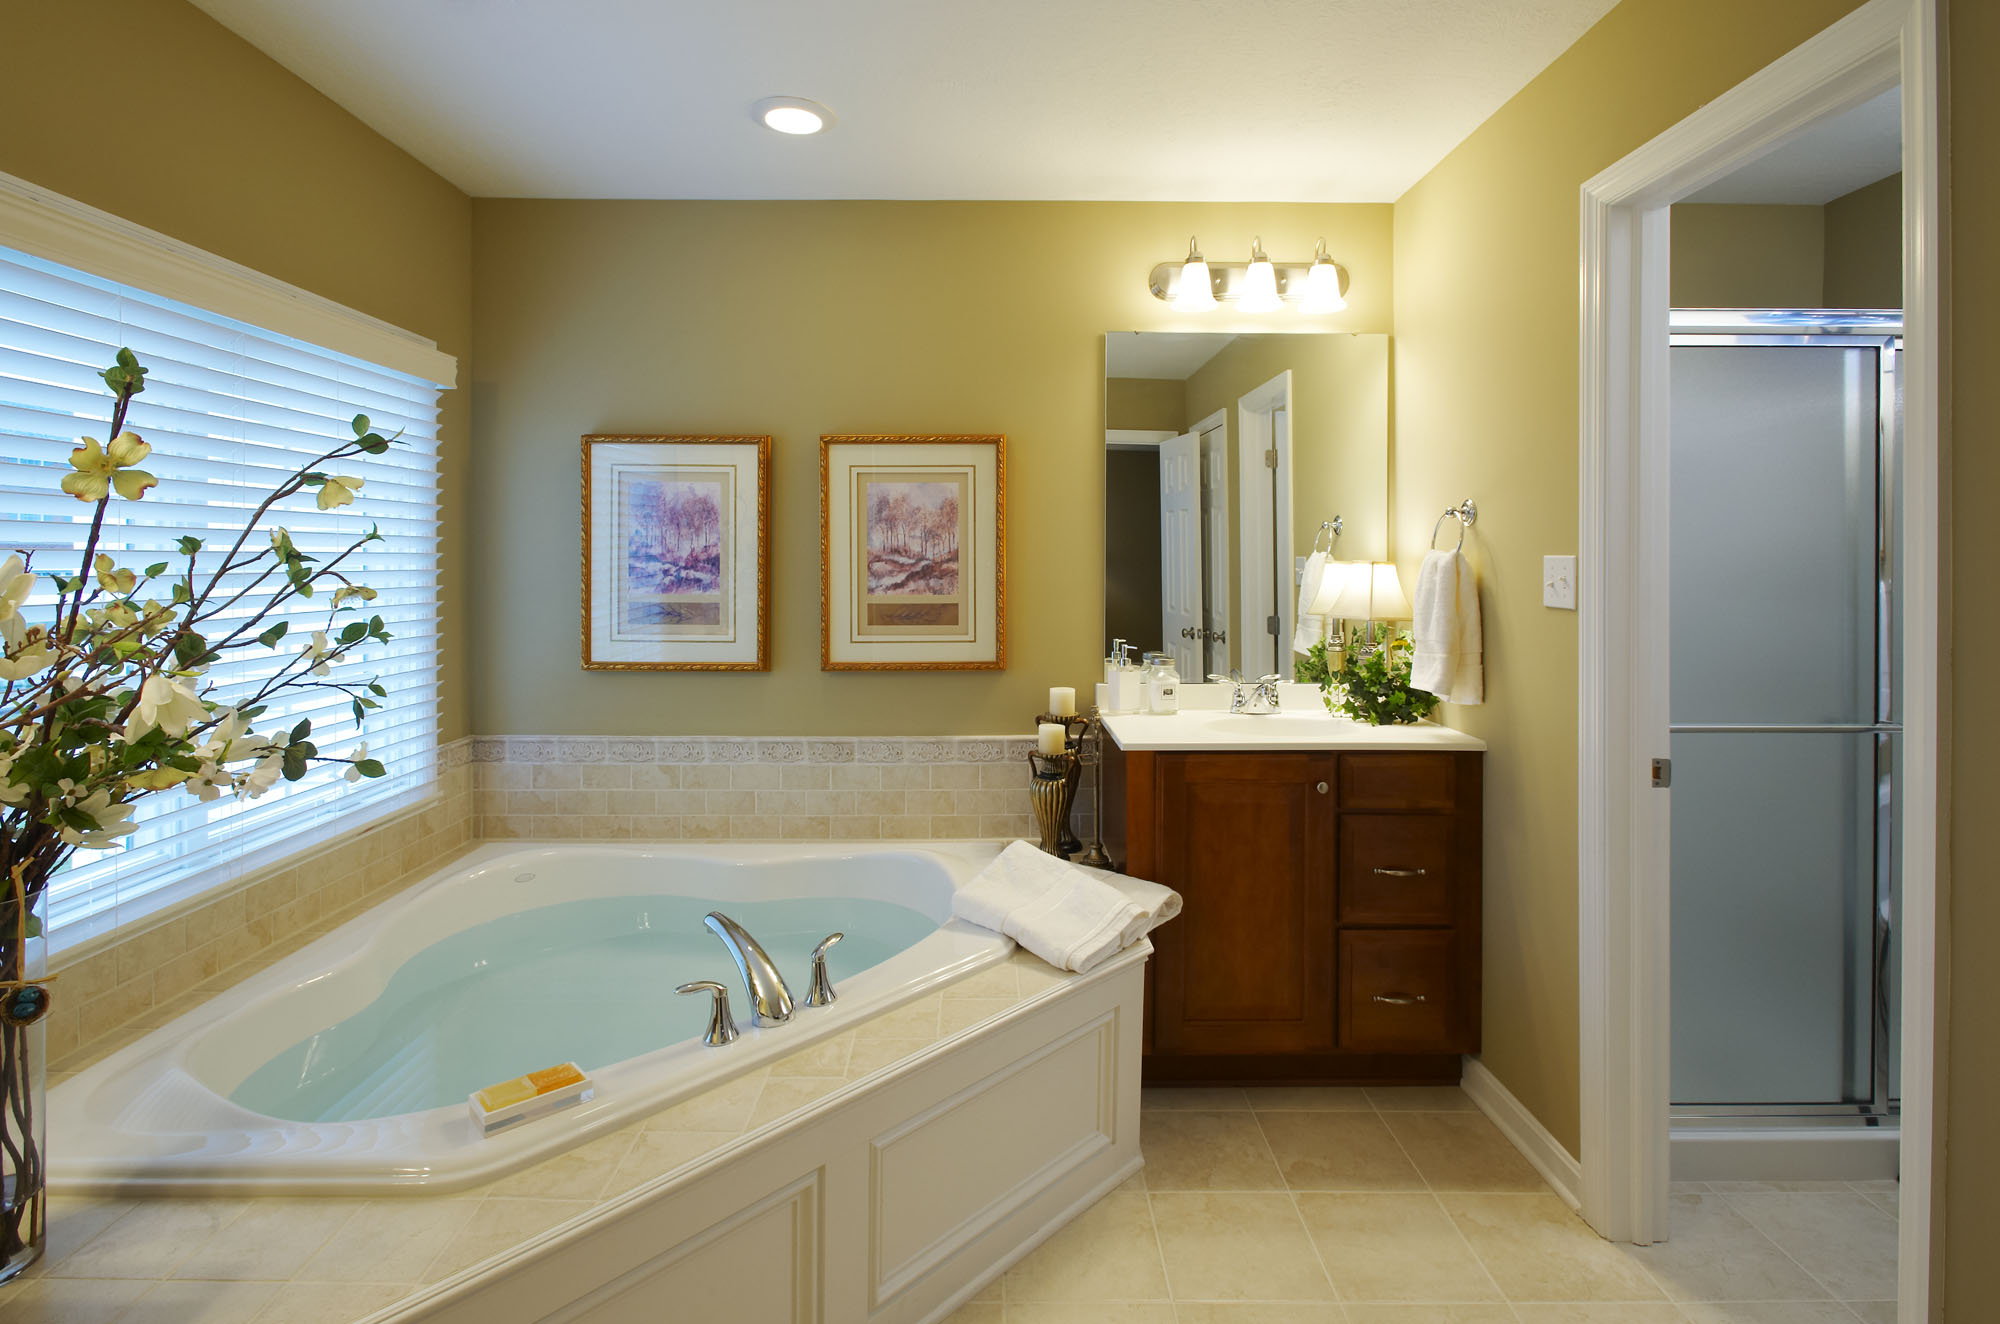 Model home bathroom pictures 17 varities of looking your for Model bathroom designs